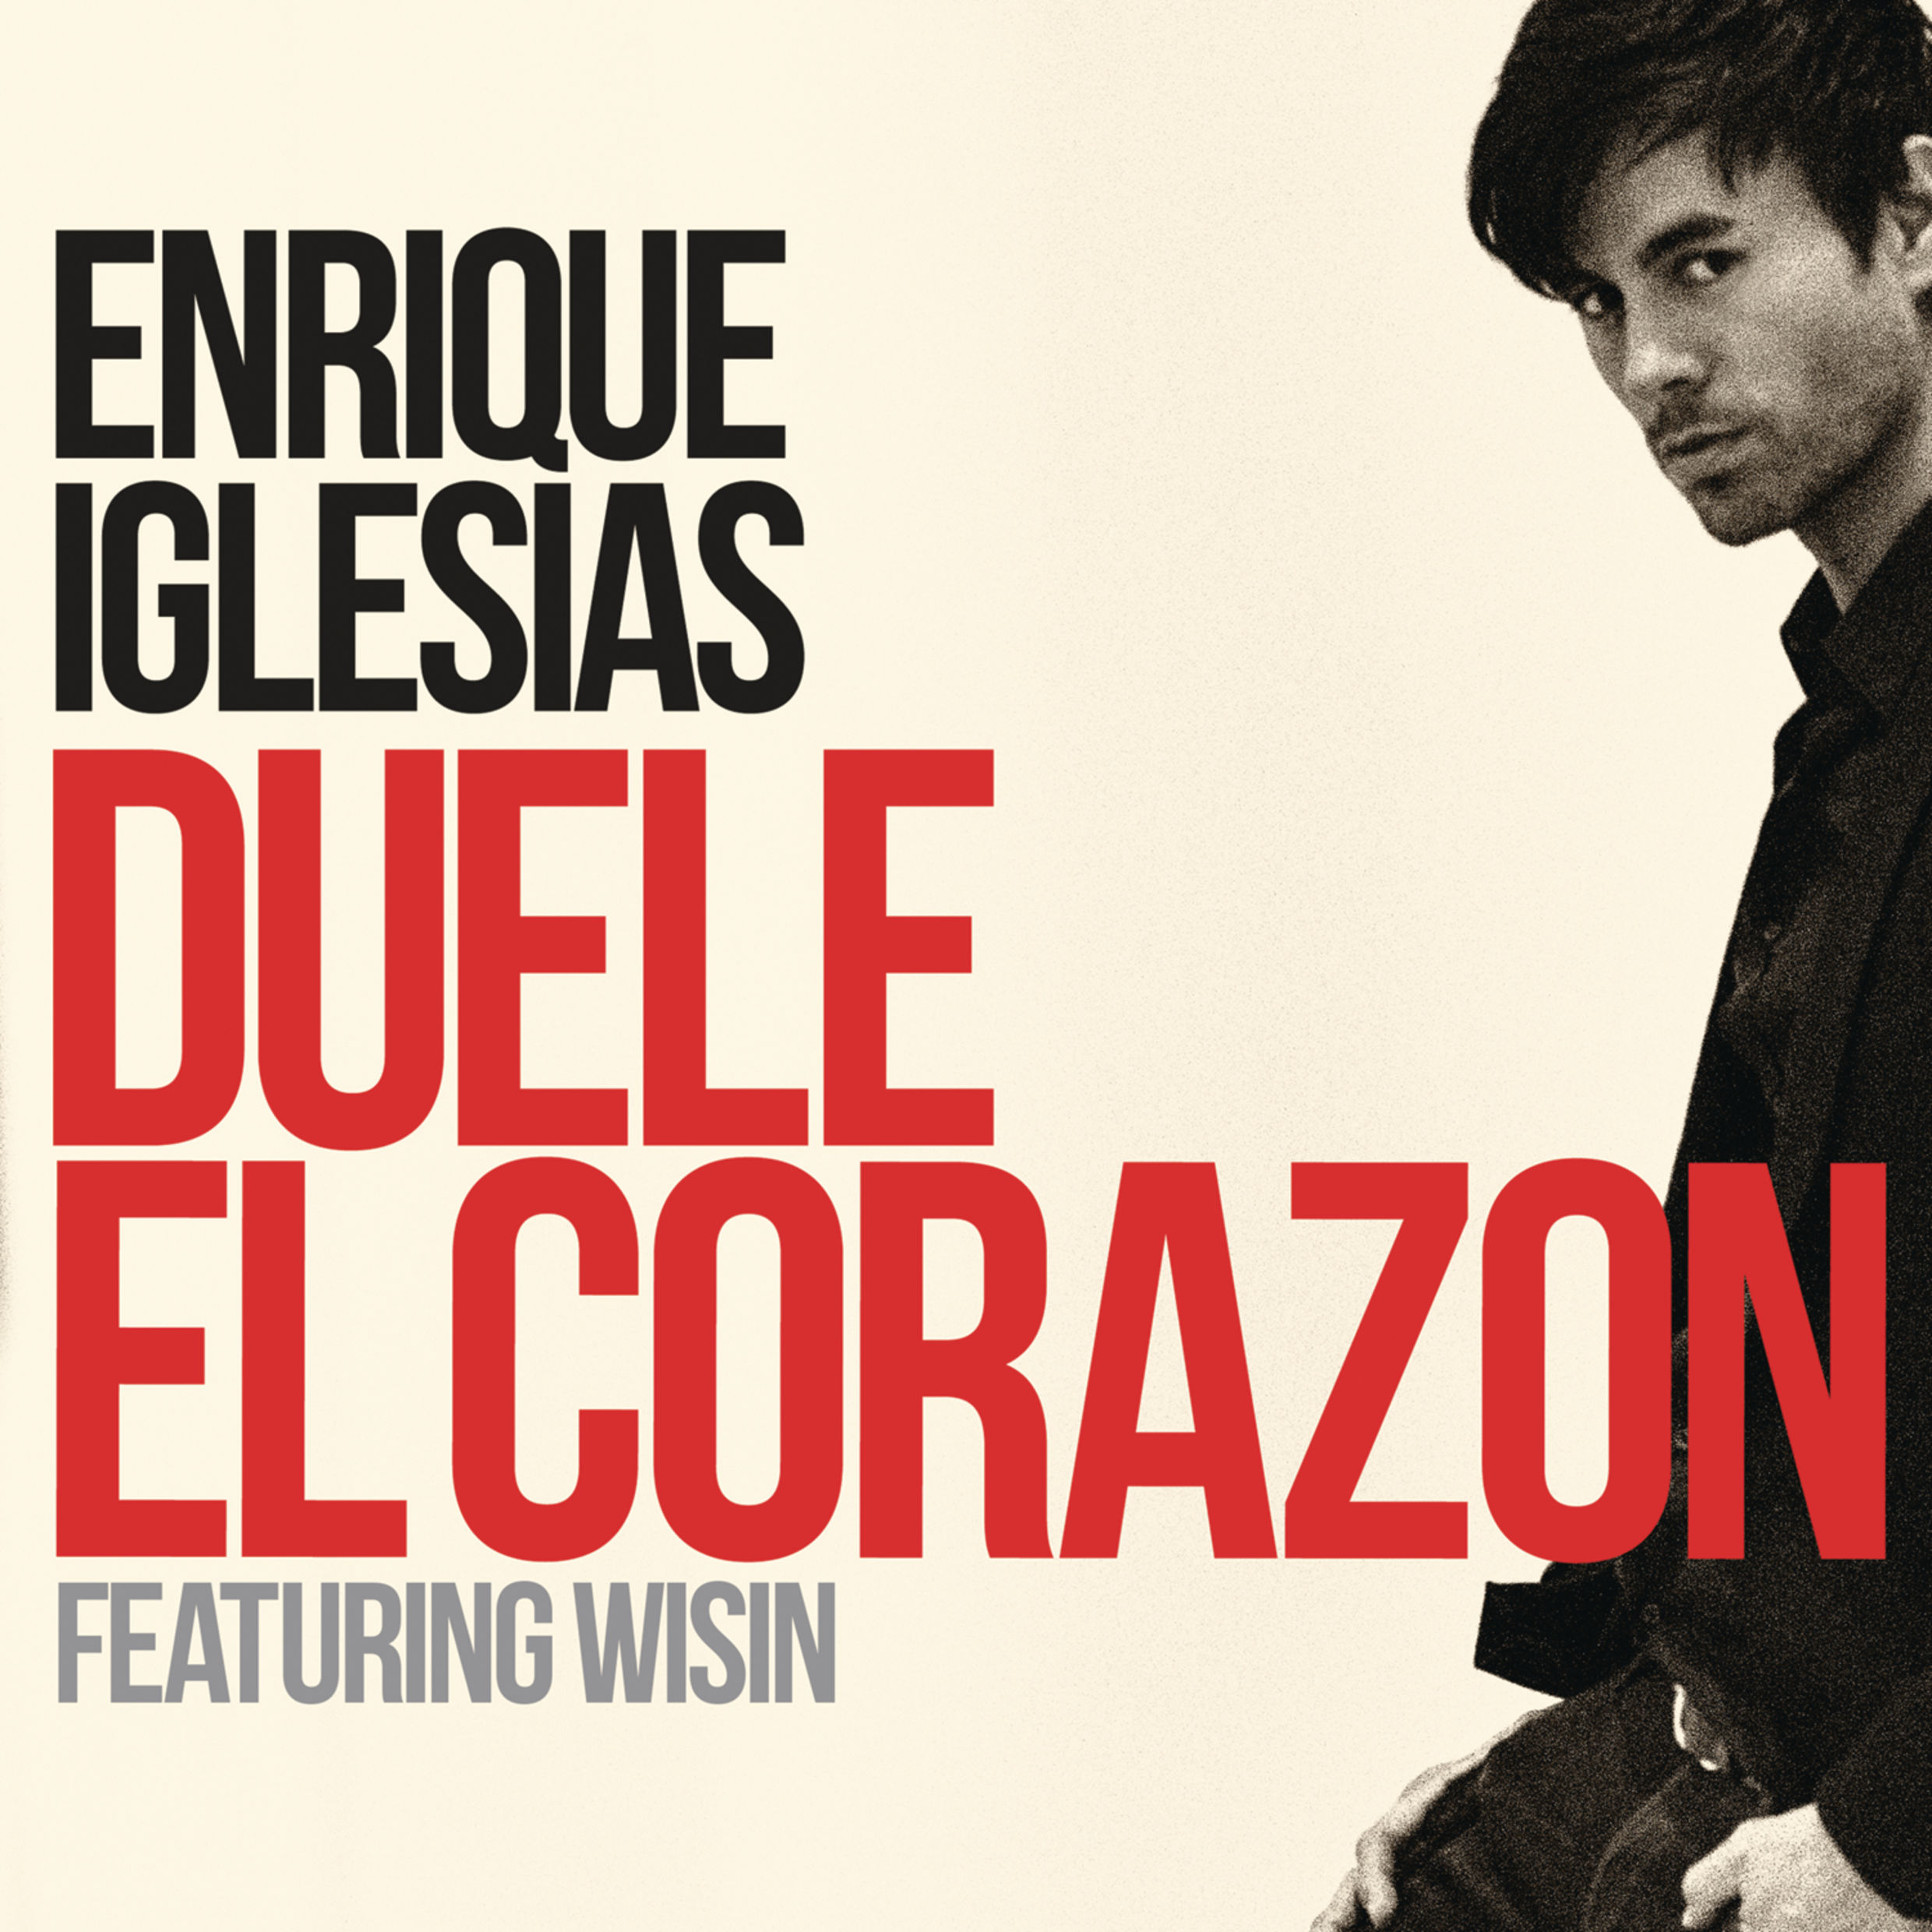 enrique iglesias hero single release date Enrique iglesias enrique iglesias will release new song with the brand new single featuring puerto (sic) the 'hero' hitmaker's featured artist matt recently.